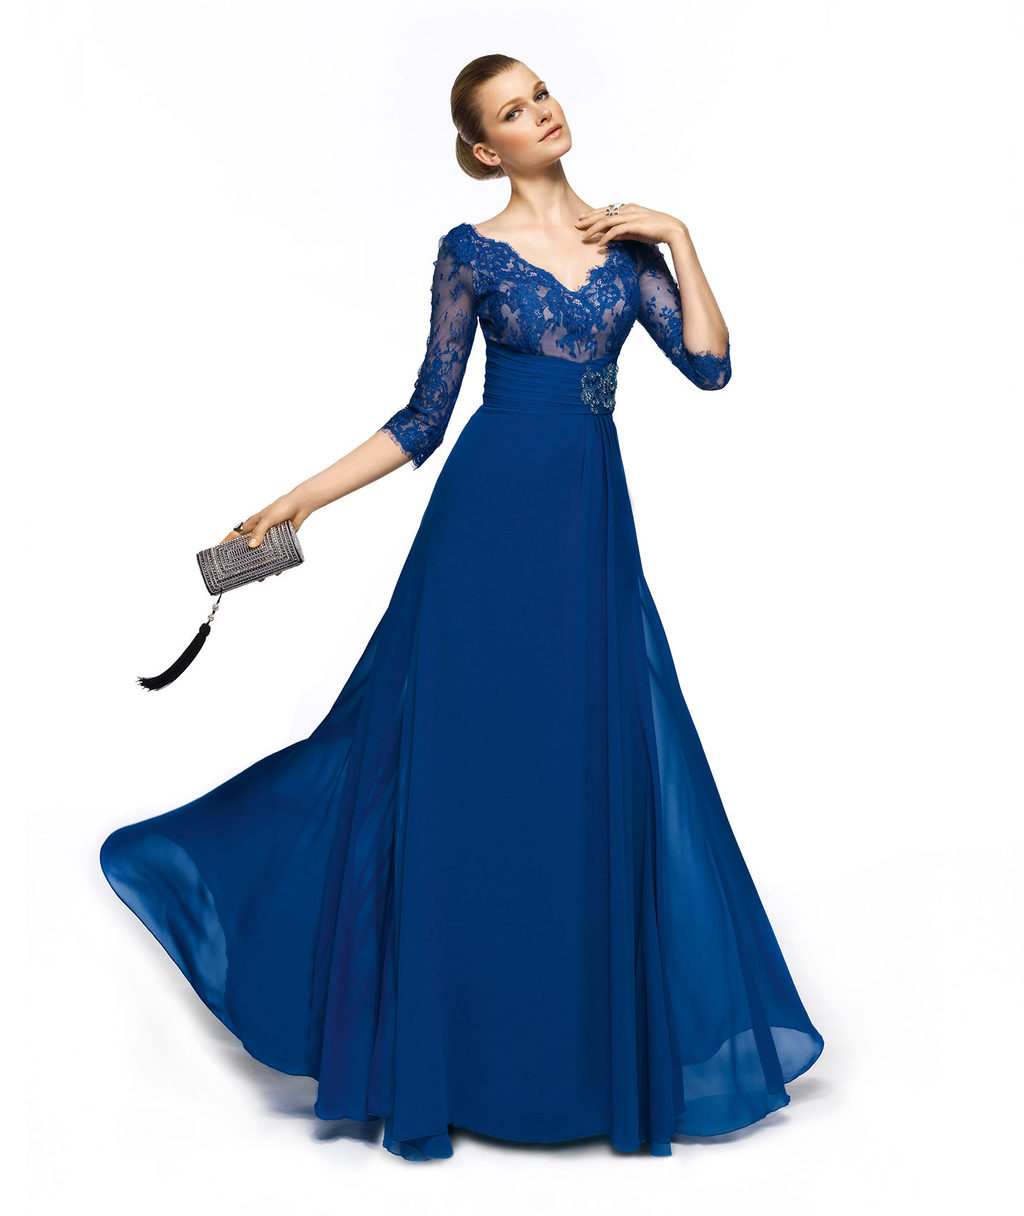 6 Kinds of Blue Evening Dresses | Cars and Cake